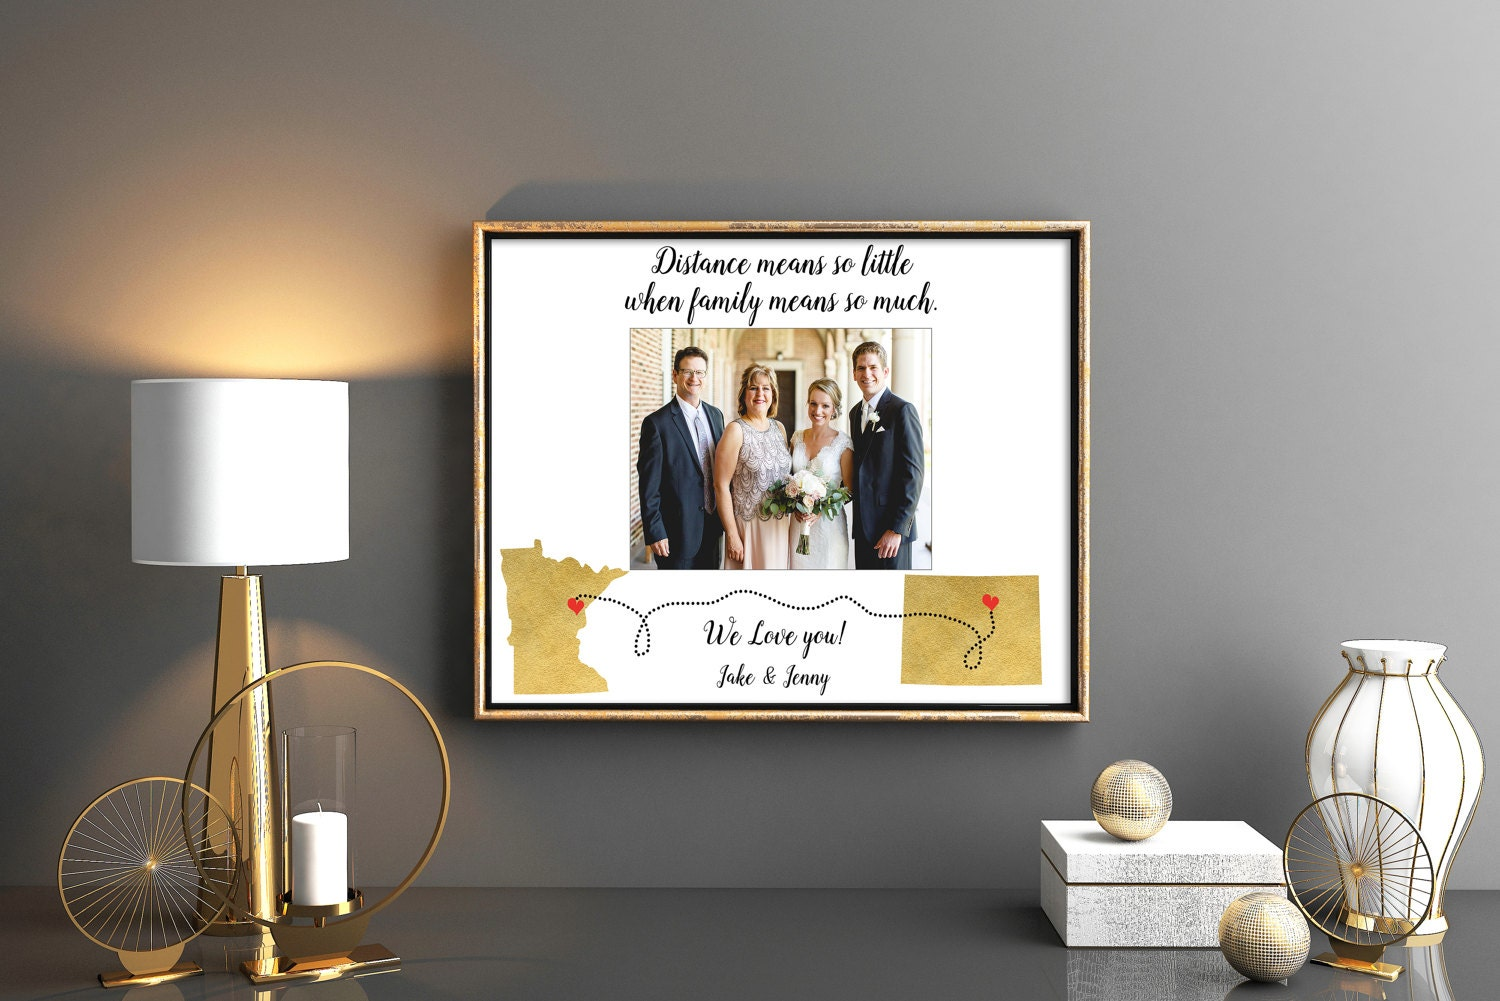 Future Mother In Law Gifts: Future Mother In Law Gift From Bride Mother Of The Groom Gift